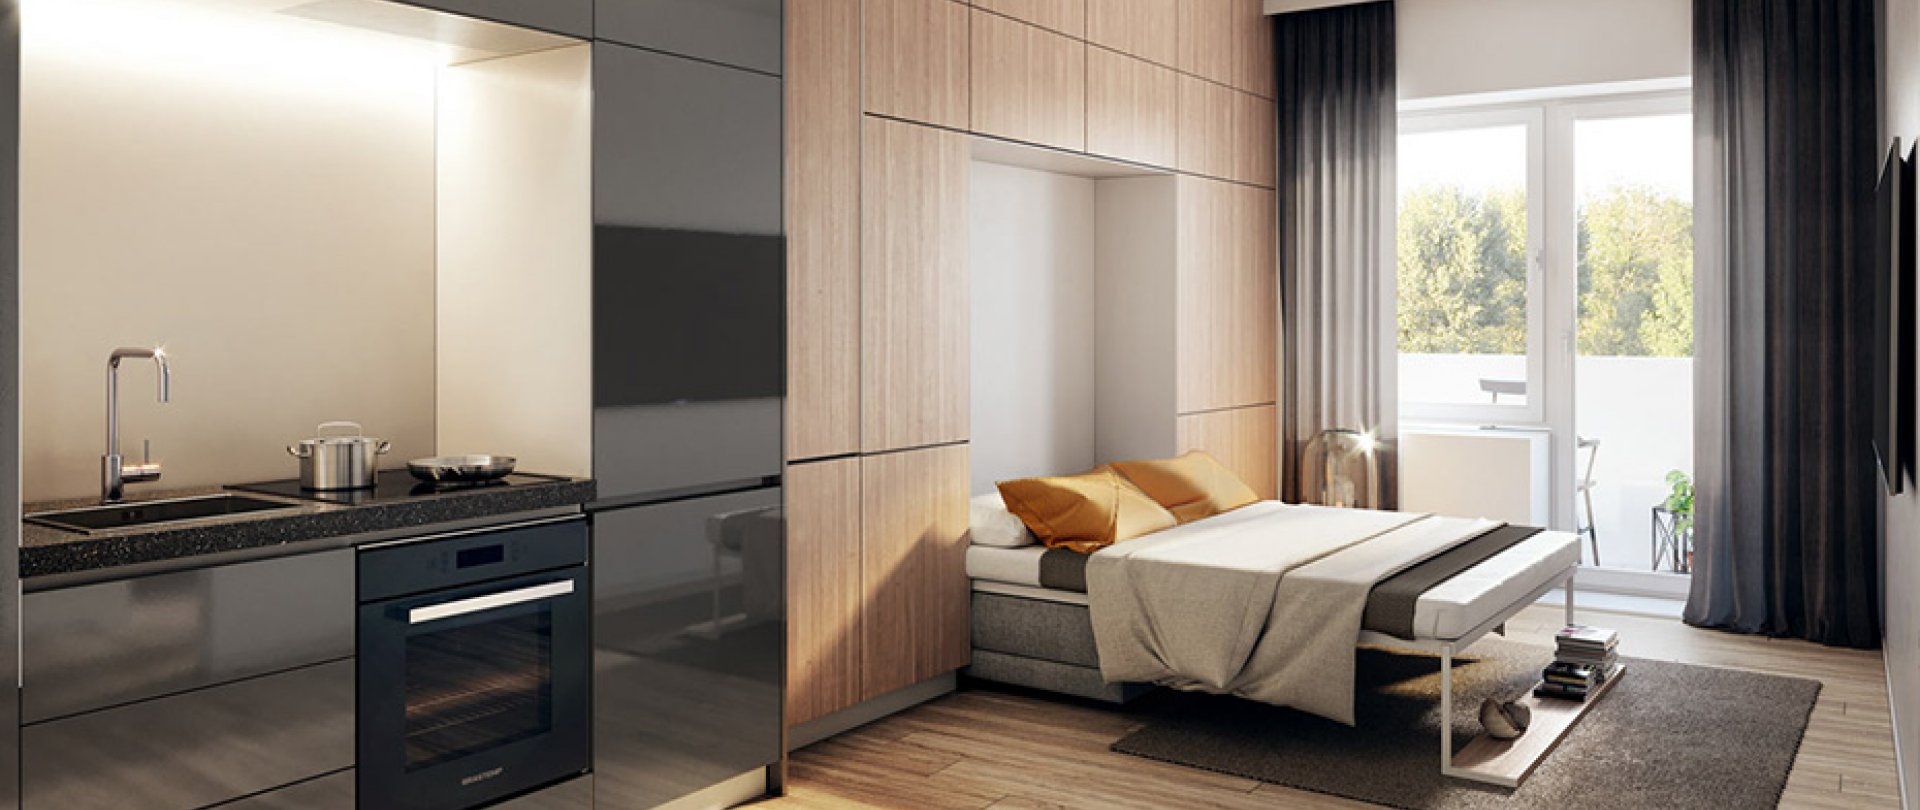 Stay In Aparthotel, Dolor Set